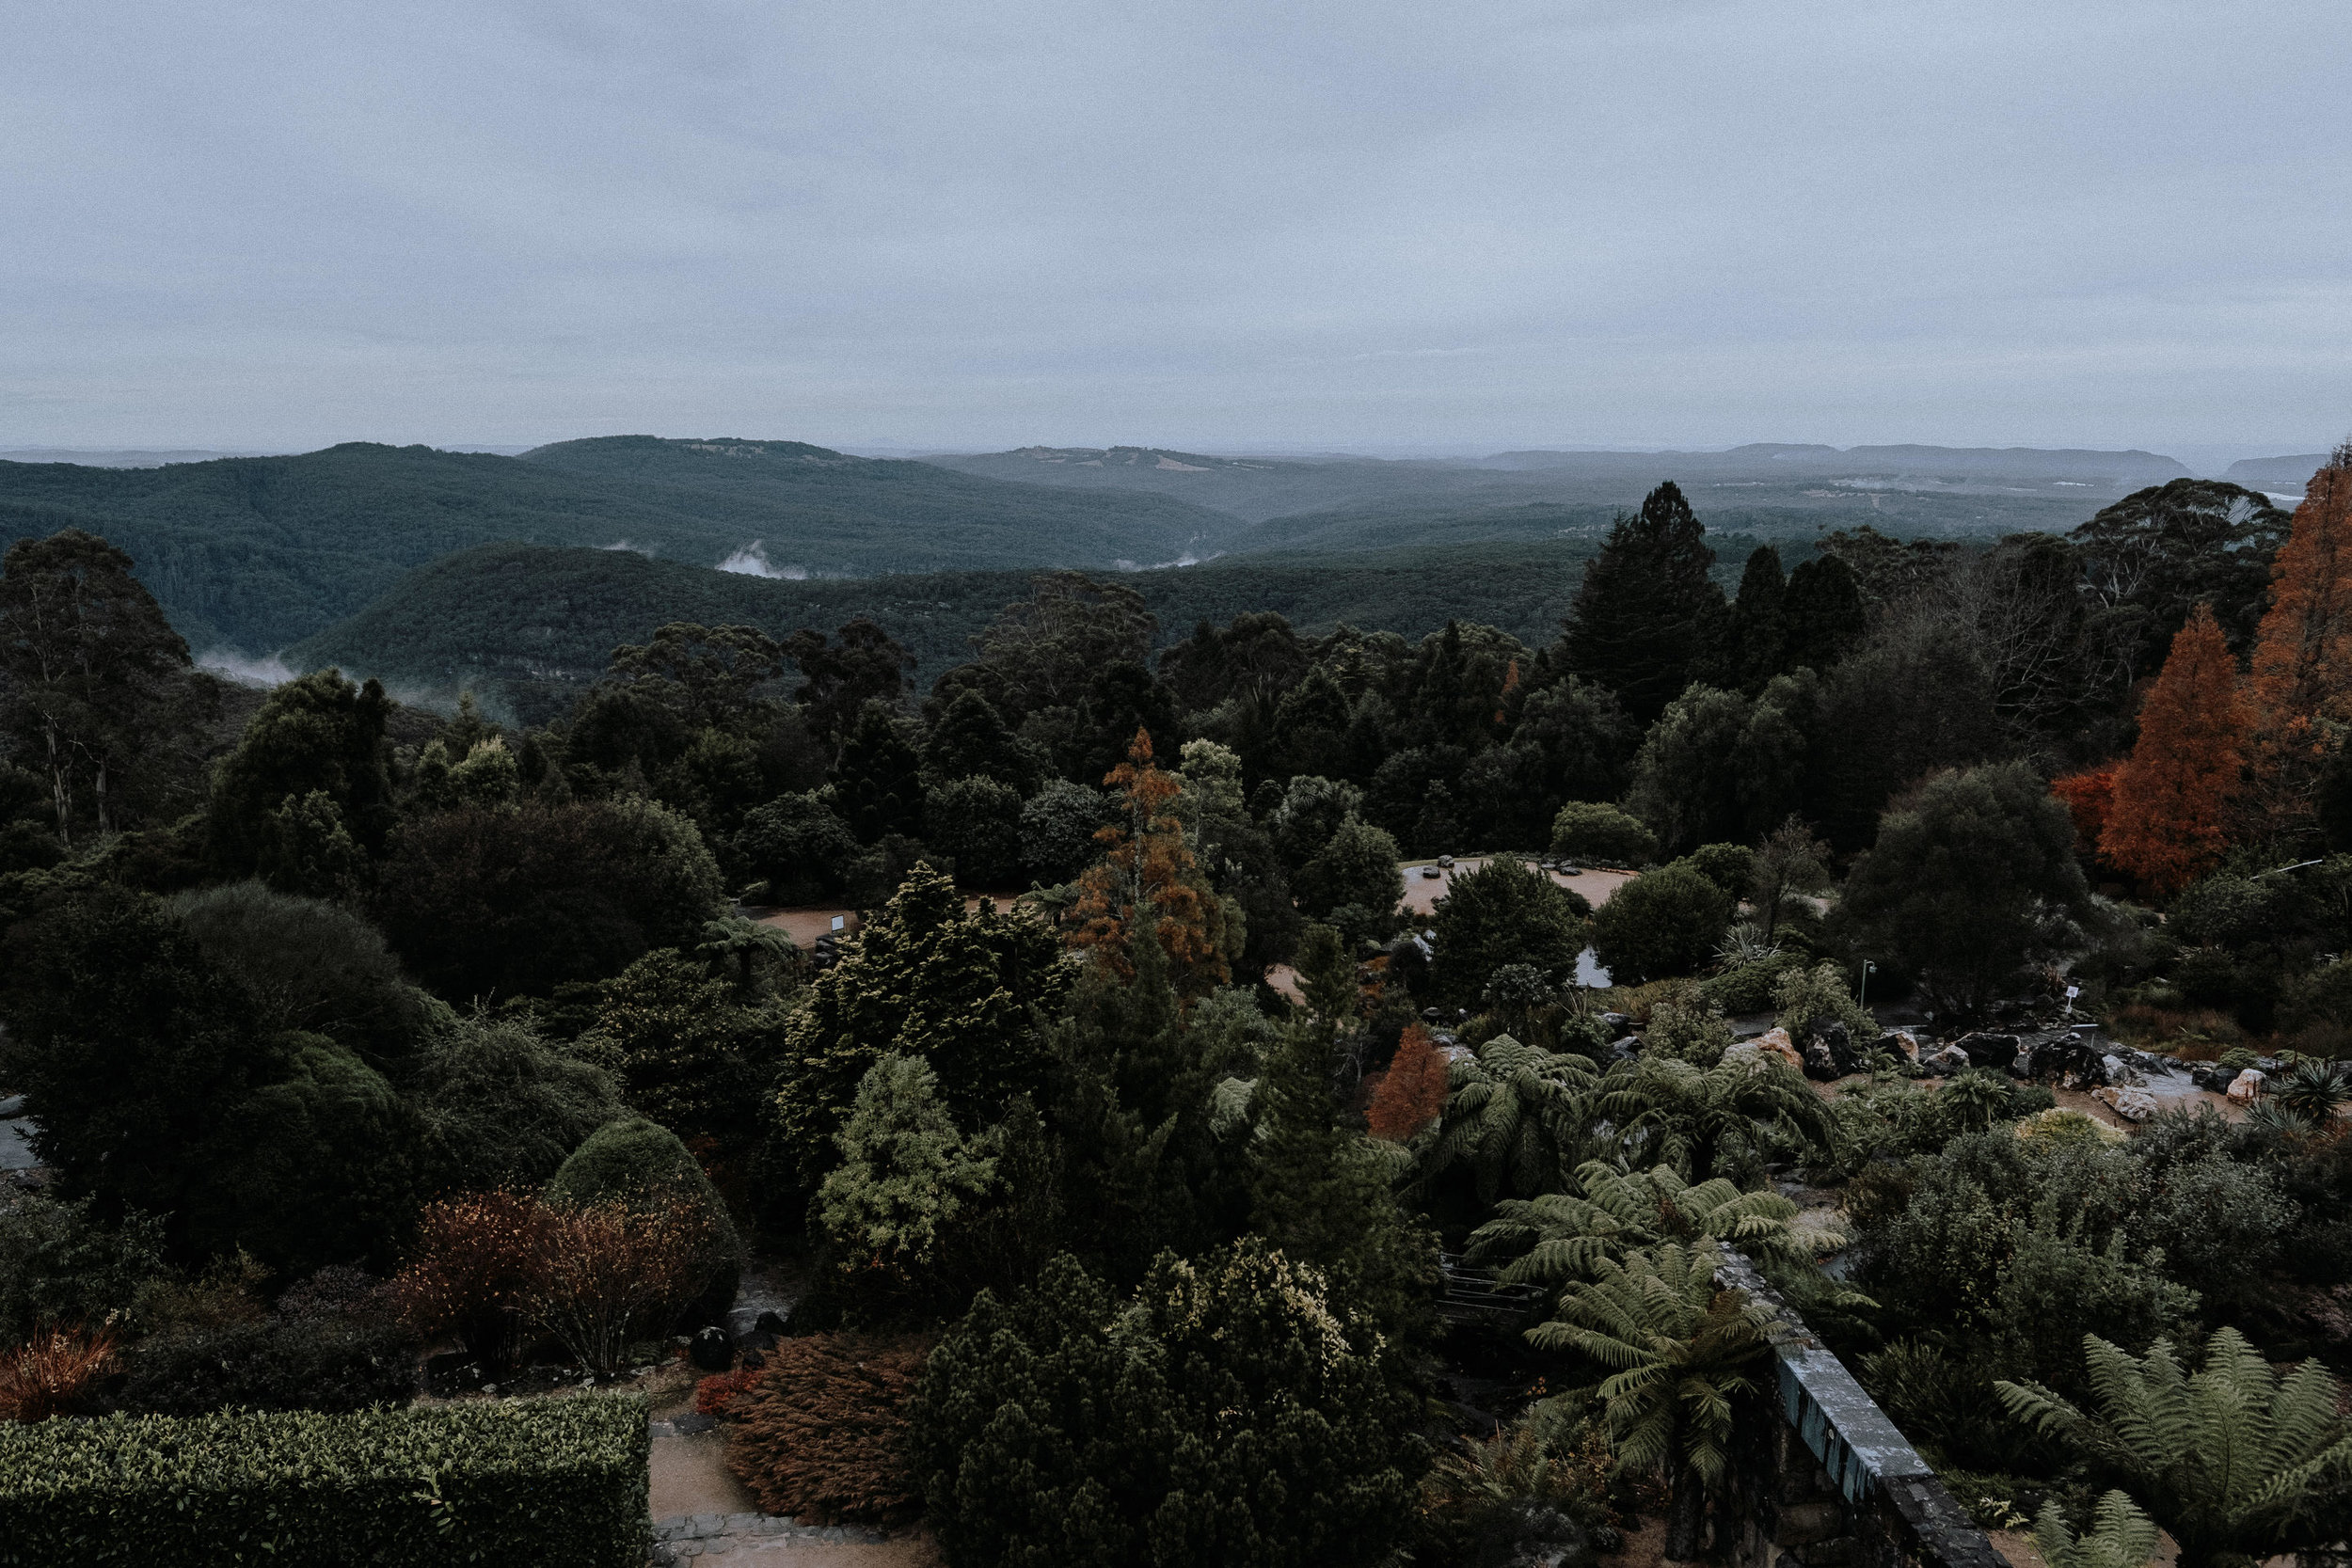 The view from Mount Tomah Botanic Gardens viewing deck